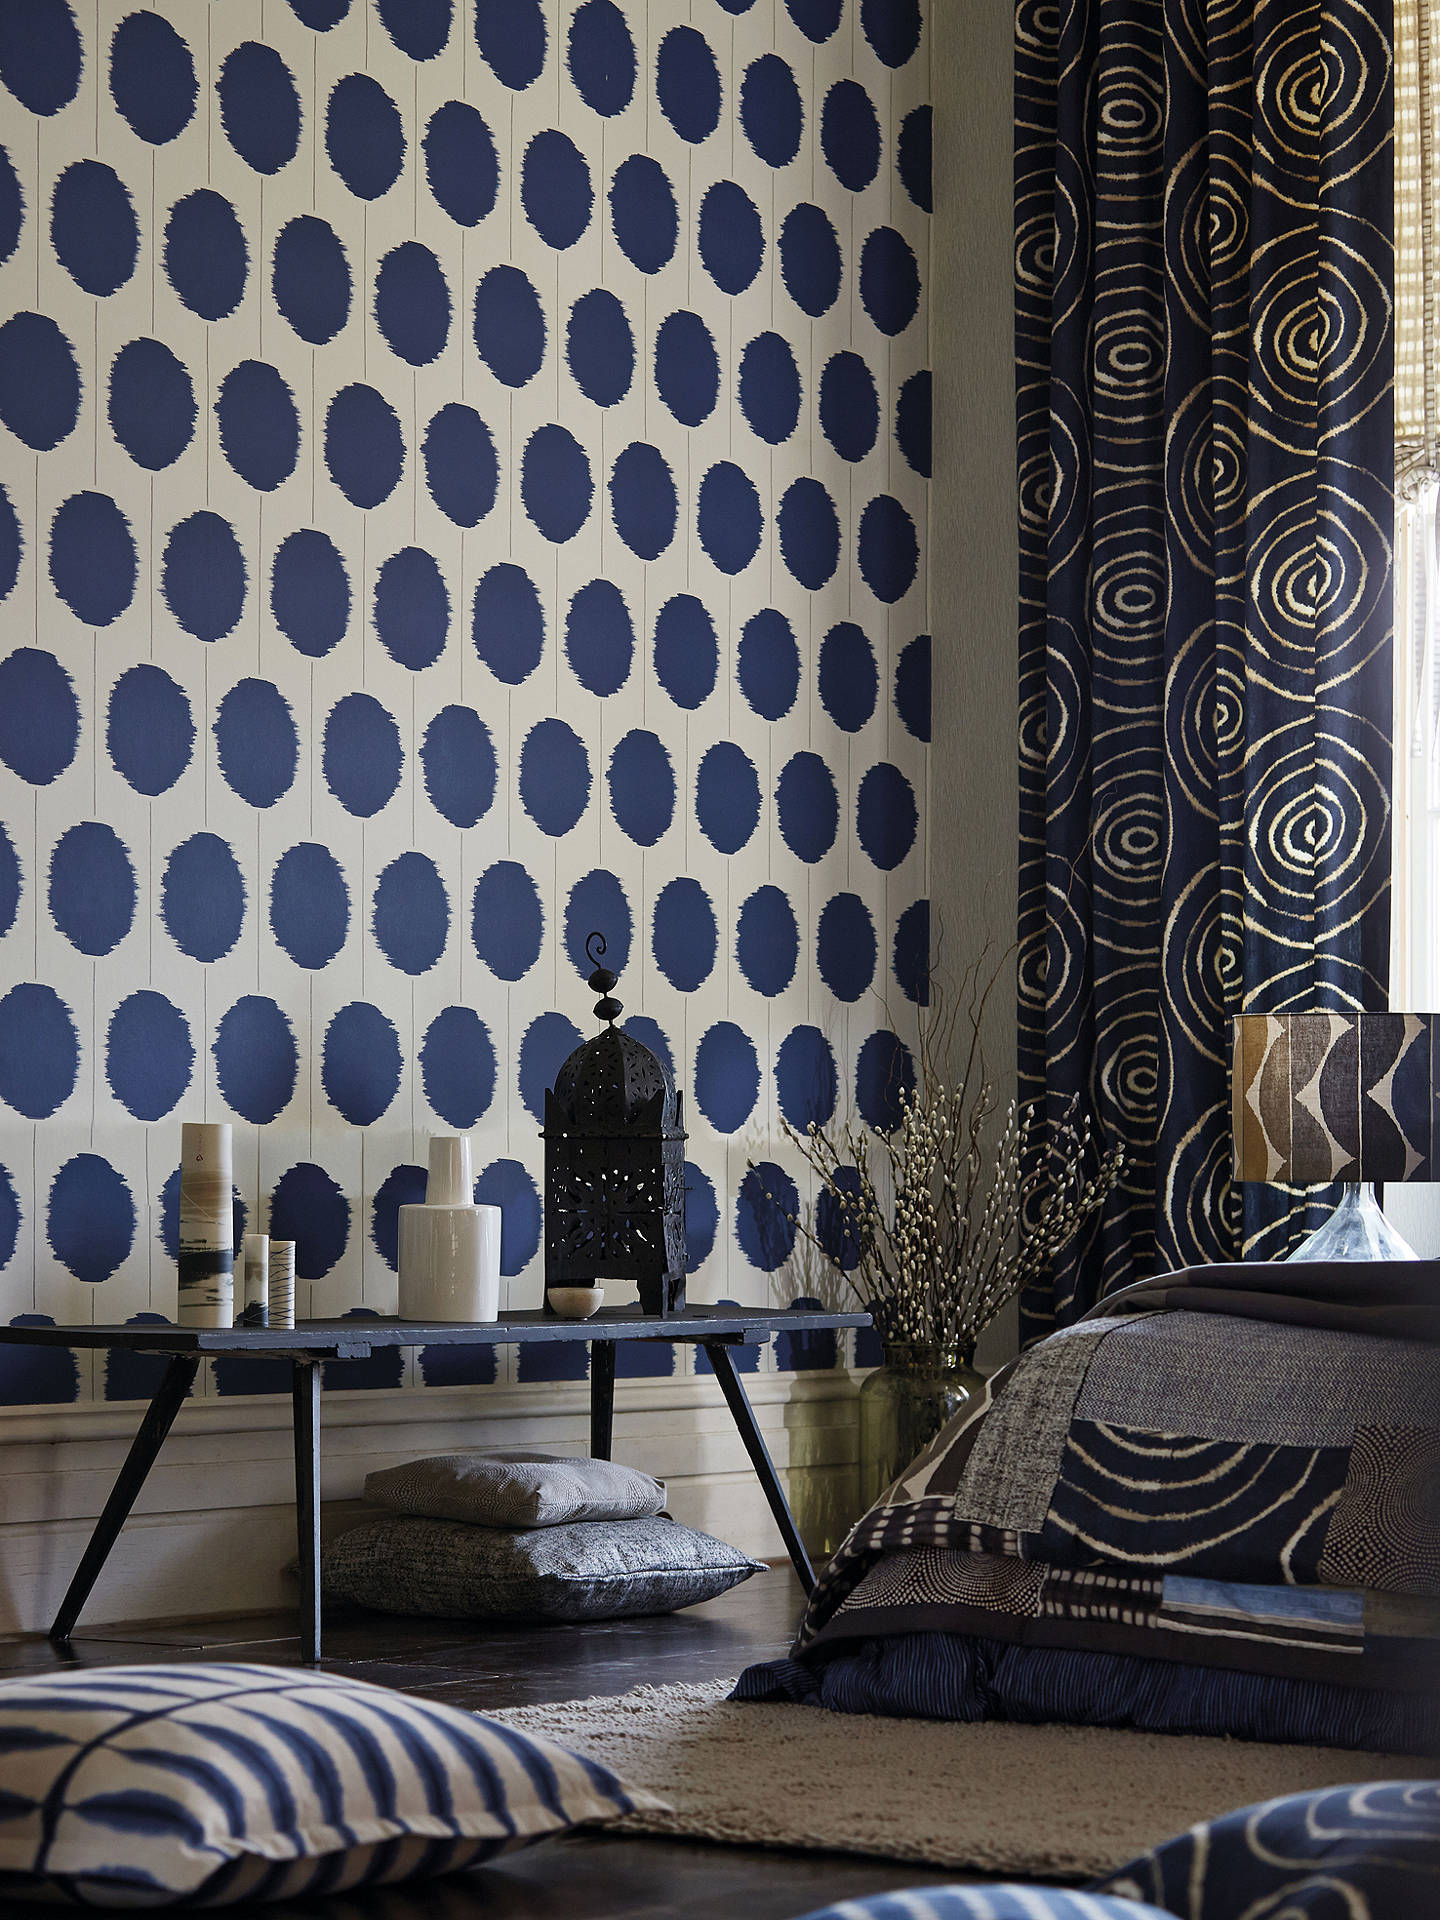 Buy Scion Kimi Paste the Wall Wallpaper, 110857 Online at johnlewis.com